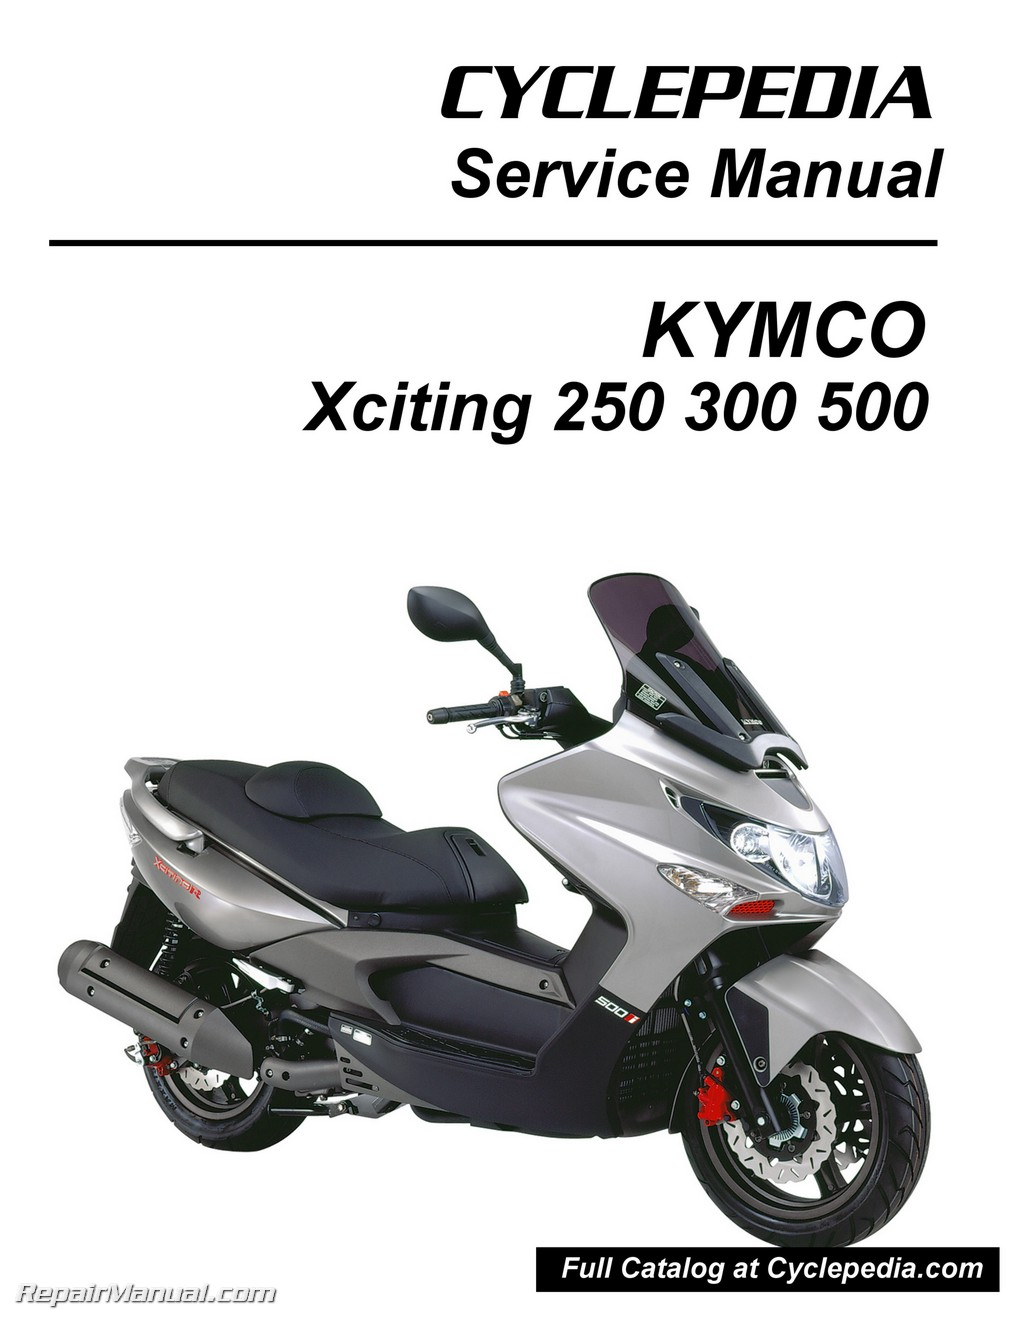 [SCHEMATICS_4LK]  Kymco Xciting 250 300 500 Ri Scooter Service Manual Printed by Cyclepedia | Kymco Engine Diagram |  | Repair Manuals Online